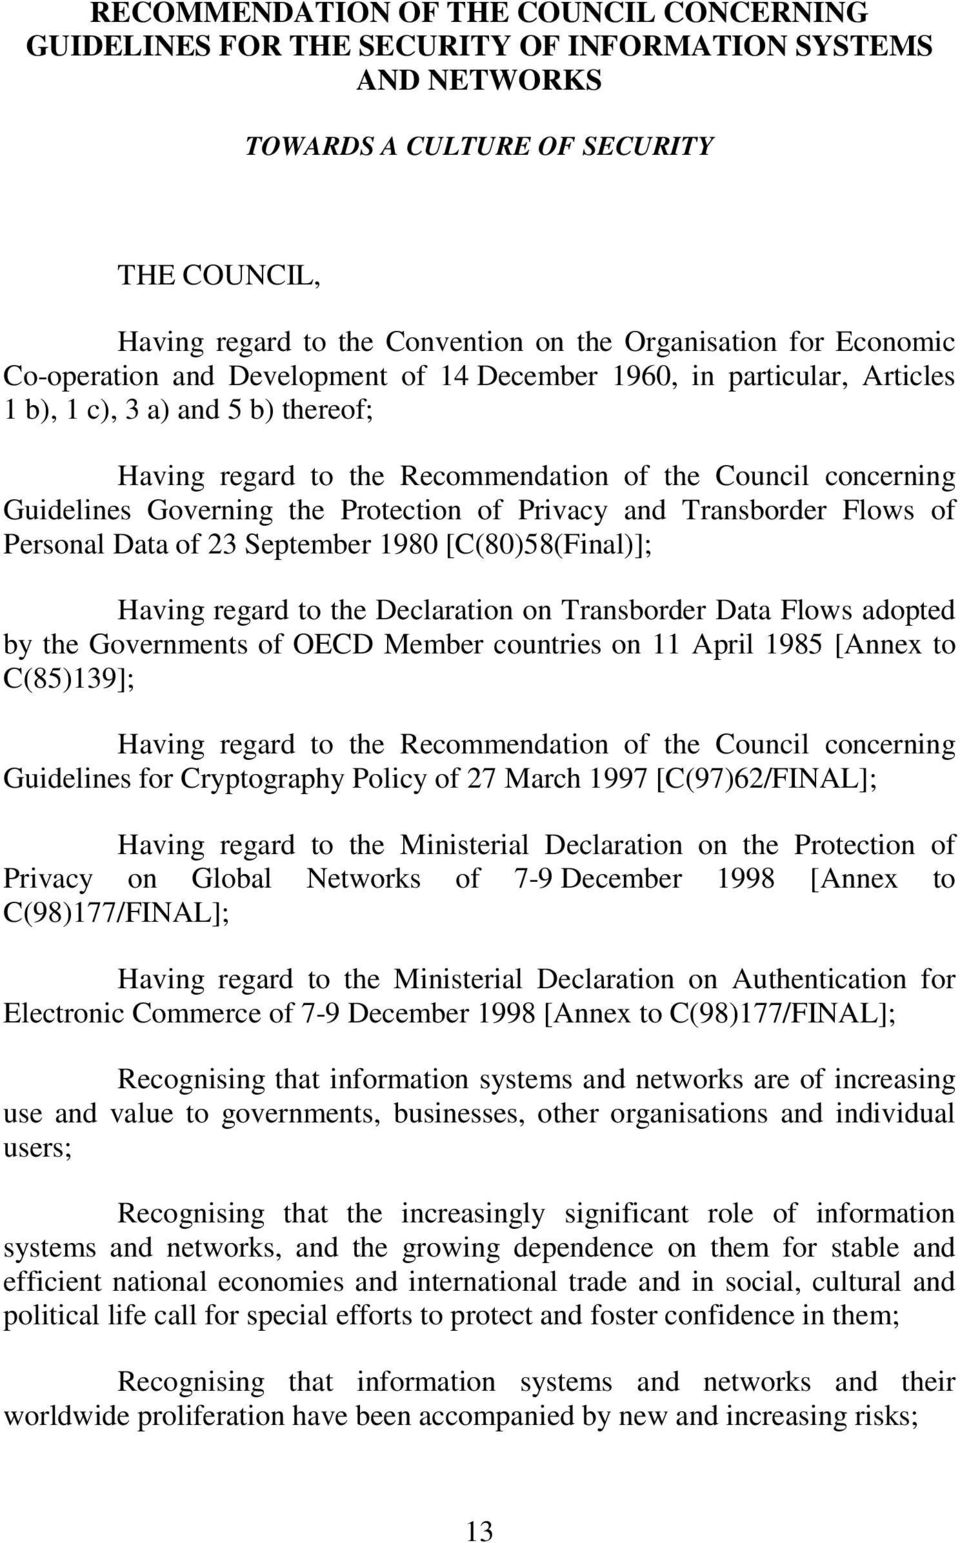 Governing the Protection of Privacy and Transborder Flows of Personal Data of 23 September 1980 [C(80)58(Final)]; Having regard to the Declaration on Transborder Data Flows adopted by the Governments